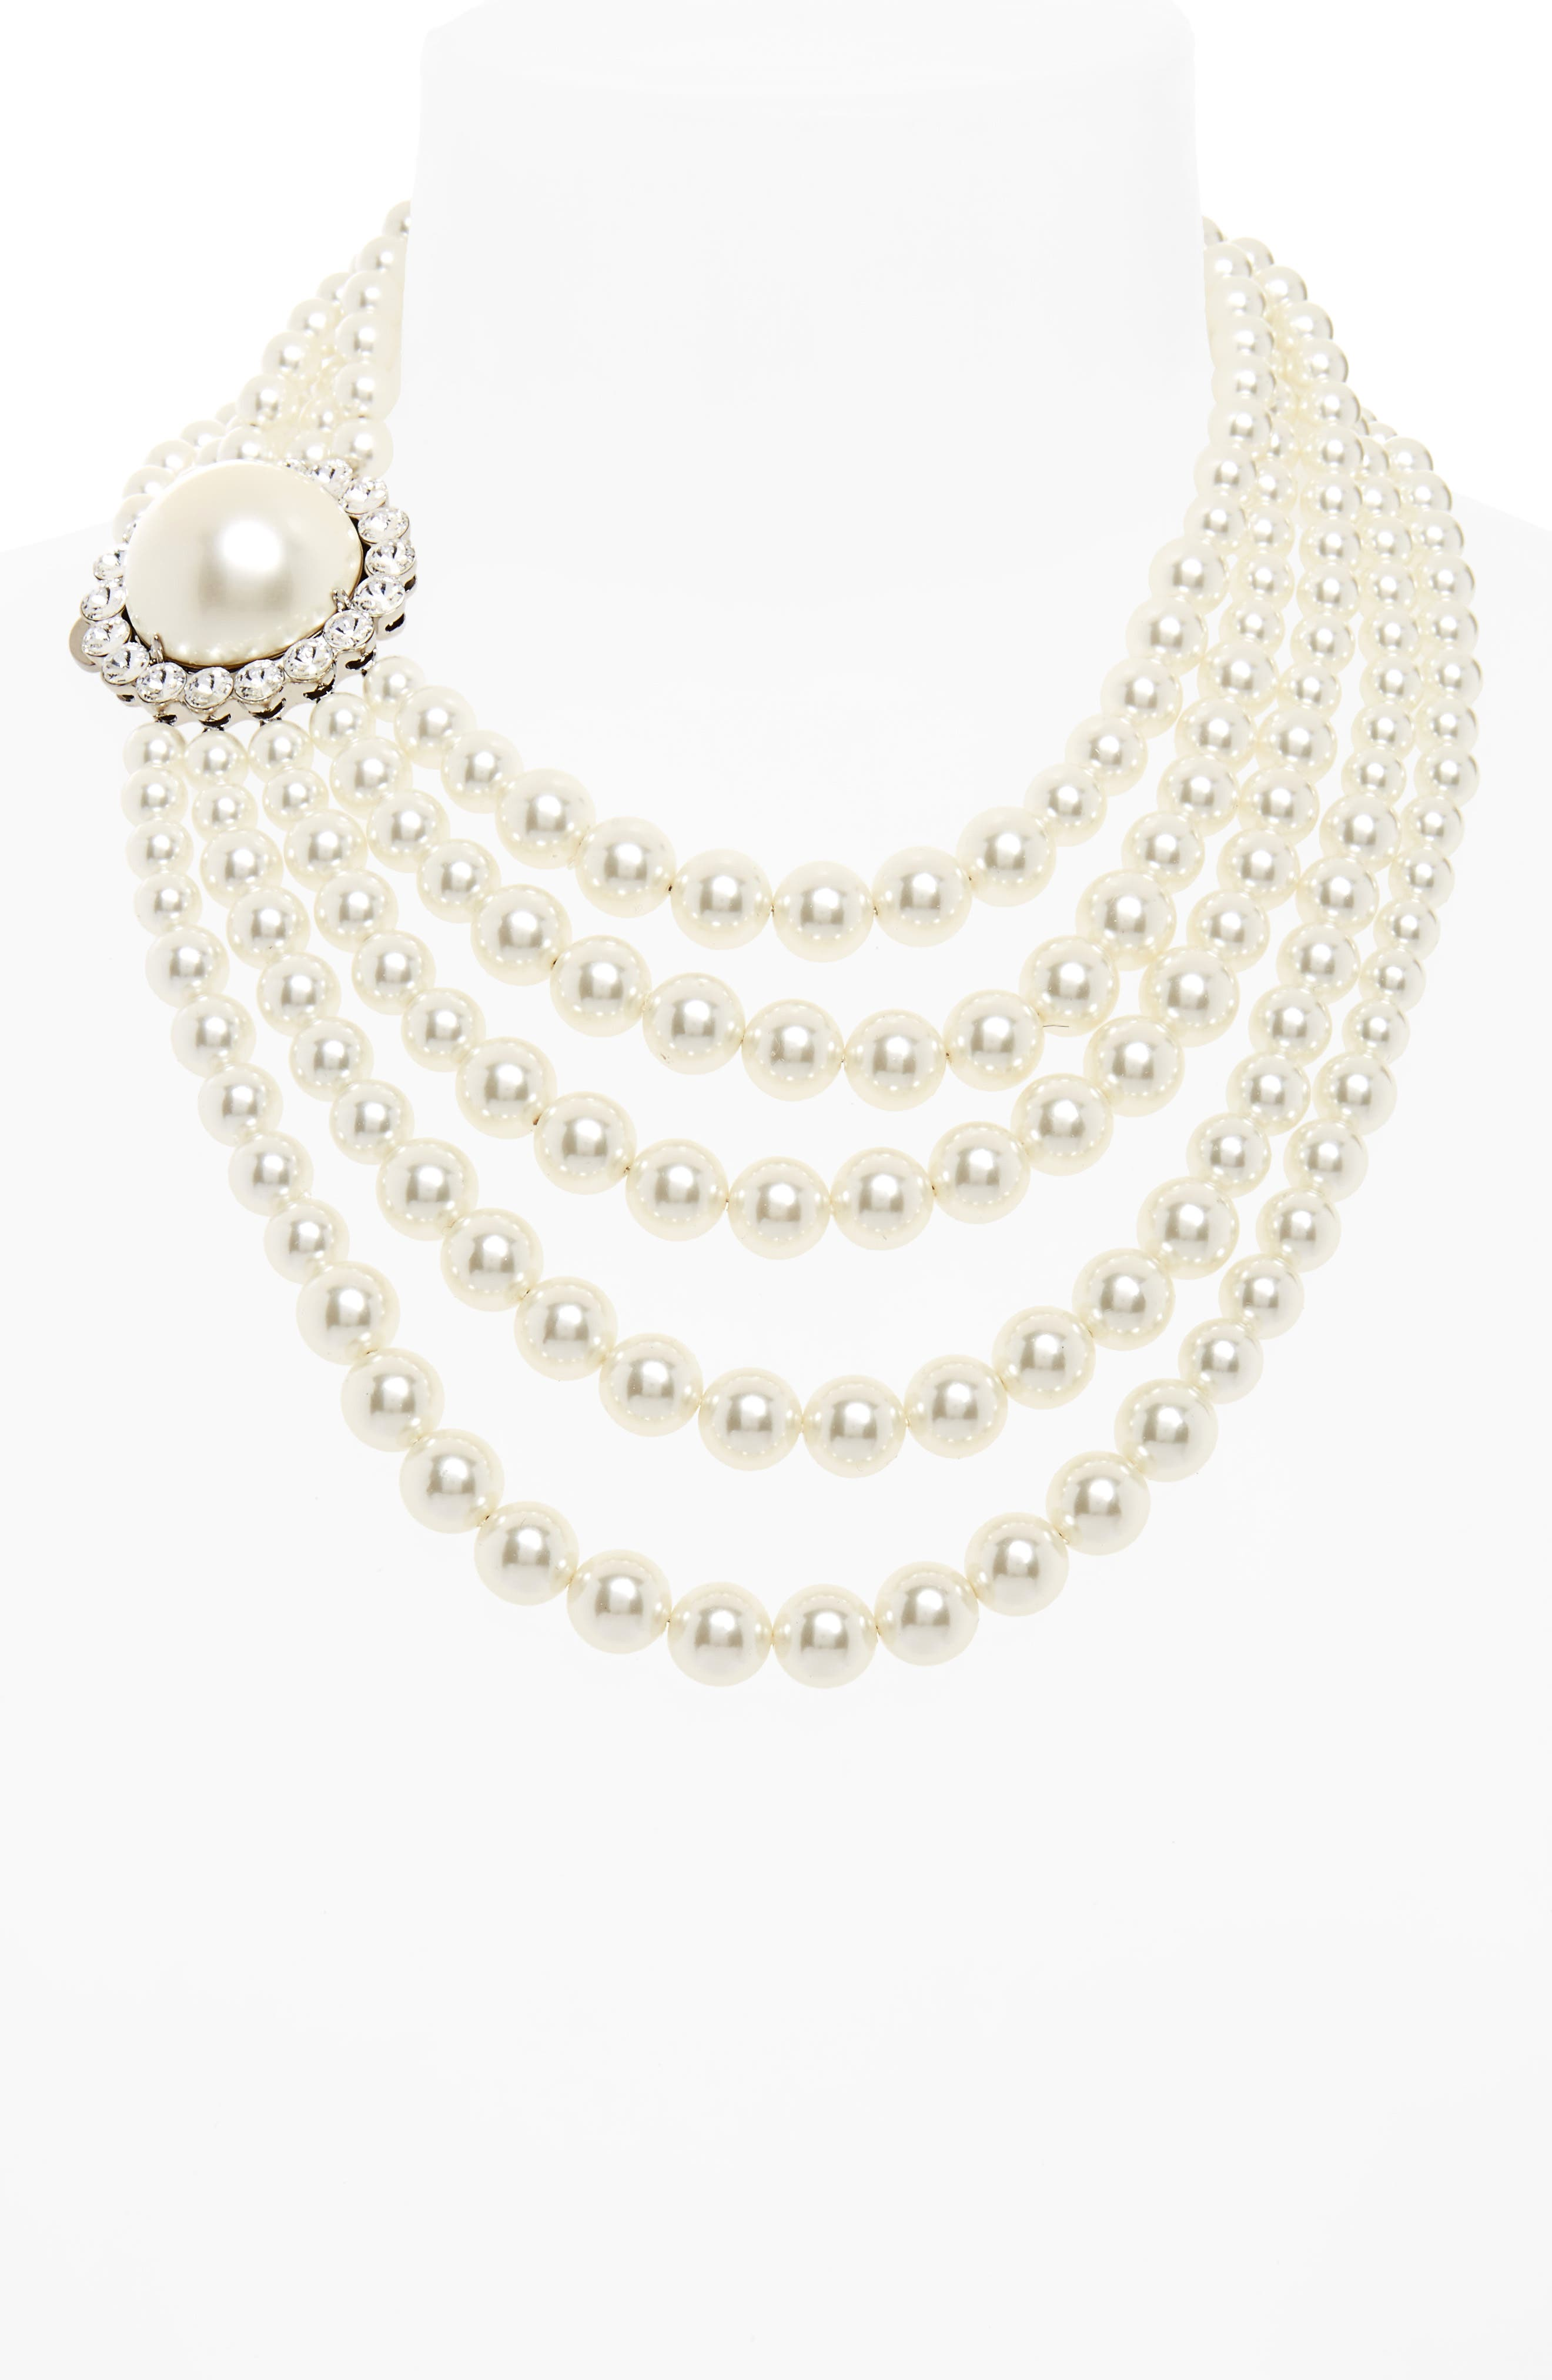 Multistrand Imitation Pearl Necklace,                             Alternate thumbnail 2, color,                             Pearl